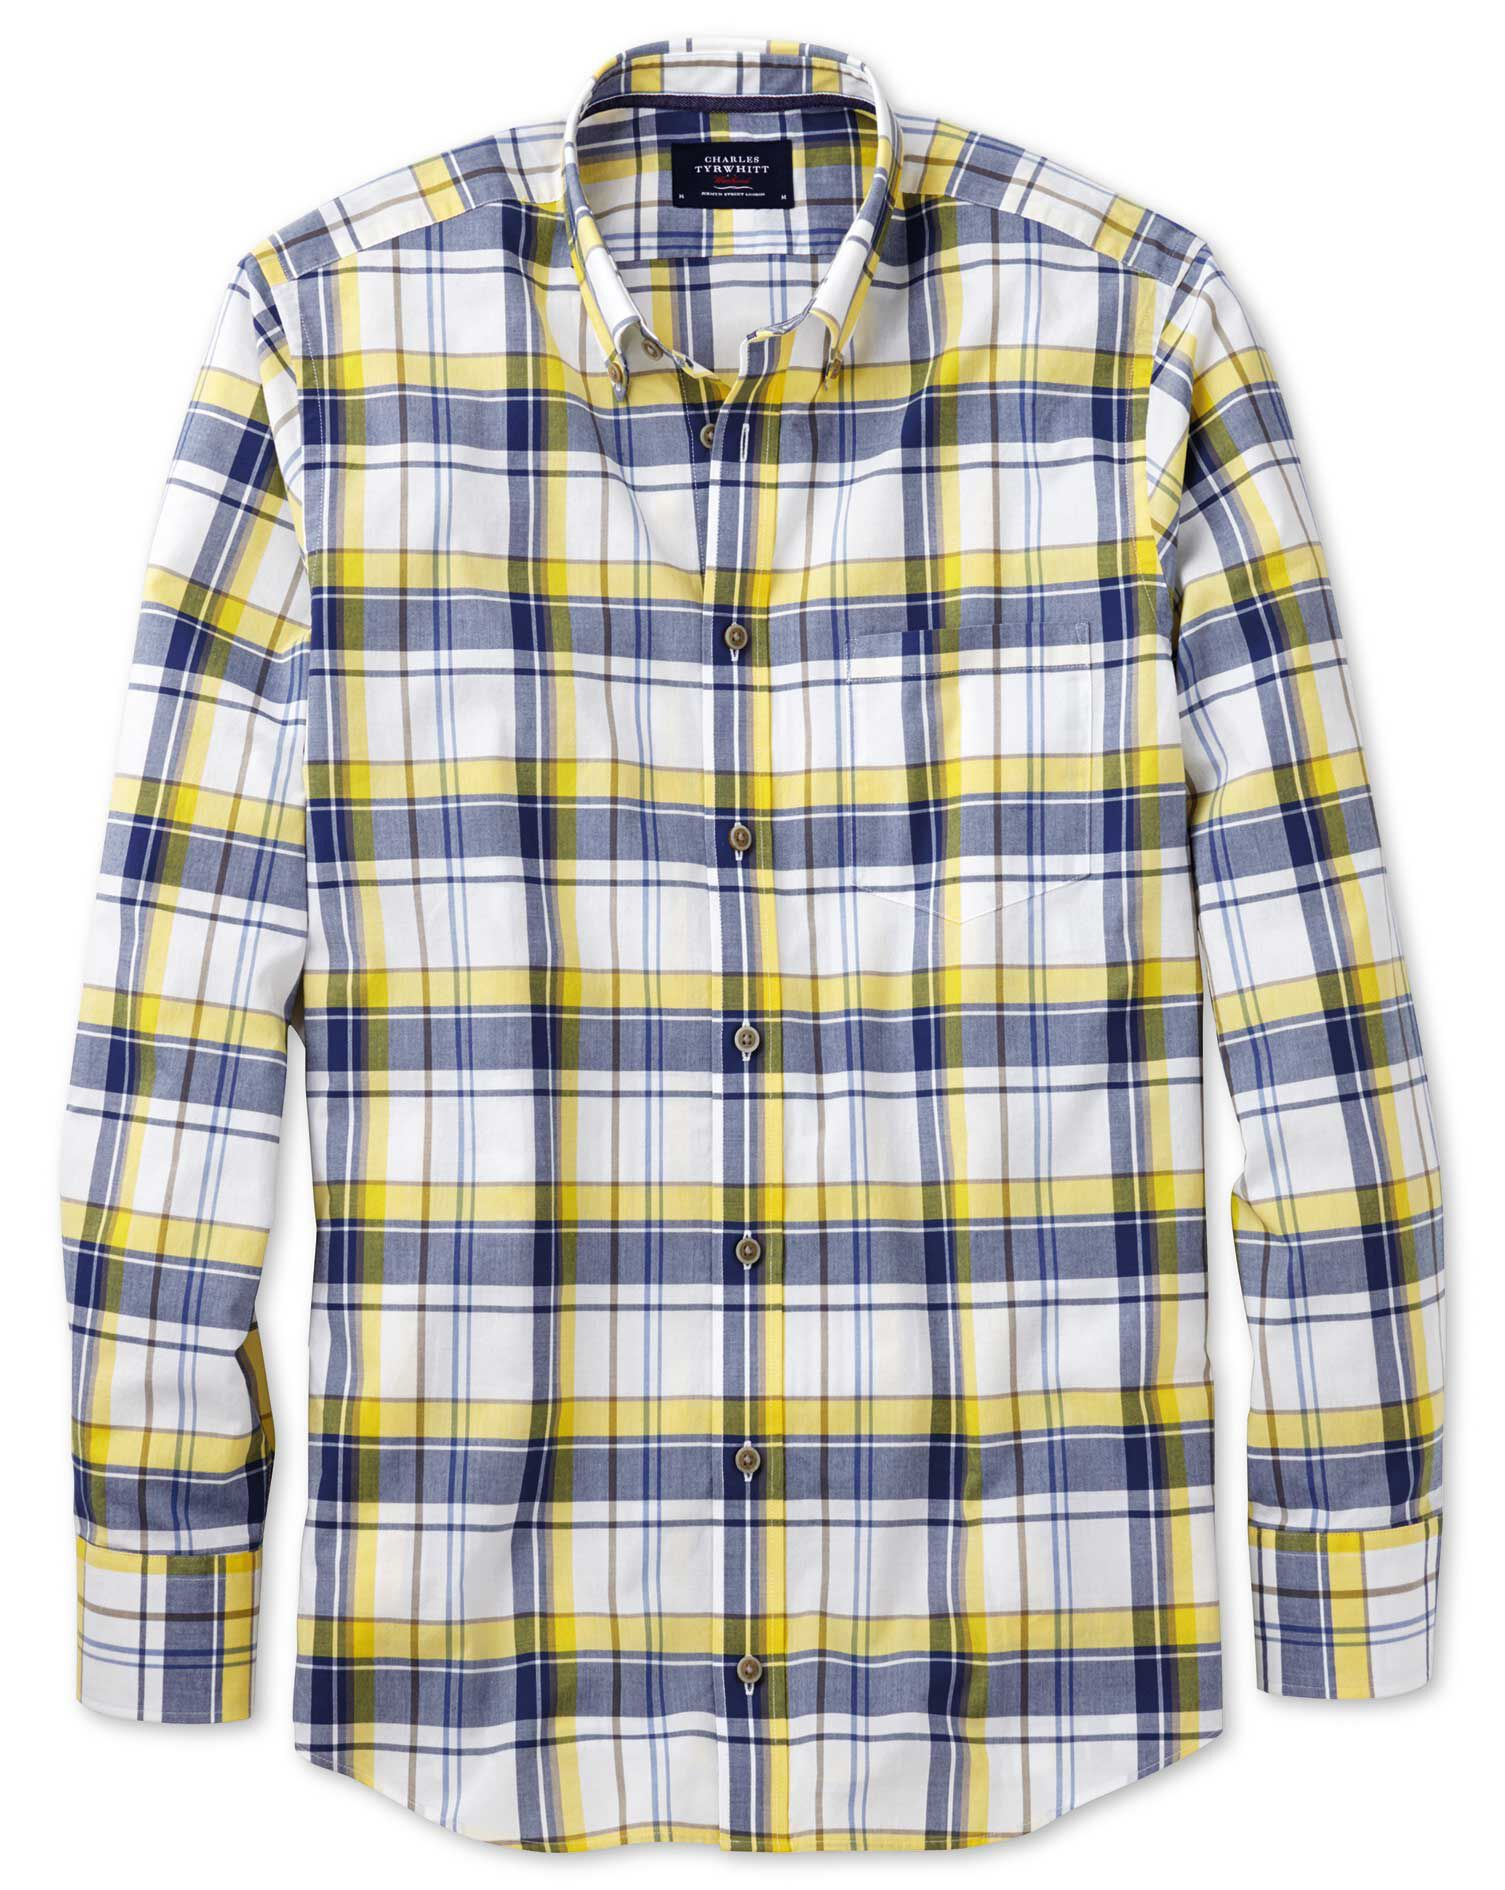 Slim Fit Button-Down Poplin Navy Blue and Yellow Check Cotton Shirt Single Cuff Size Medium by Charl